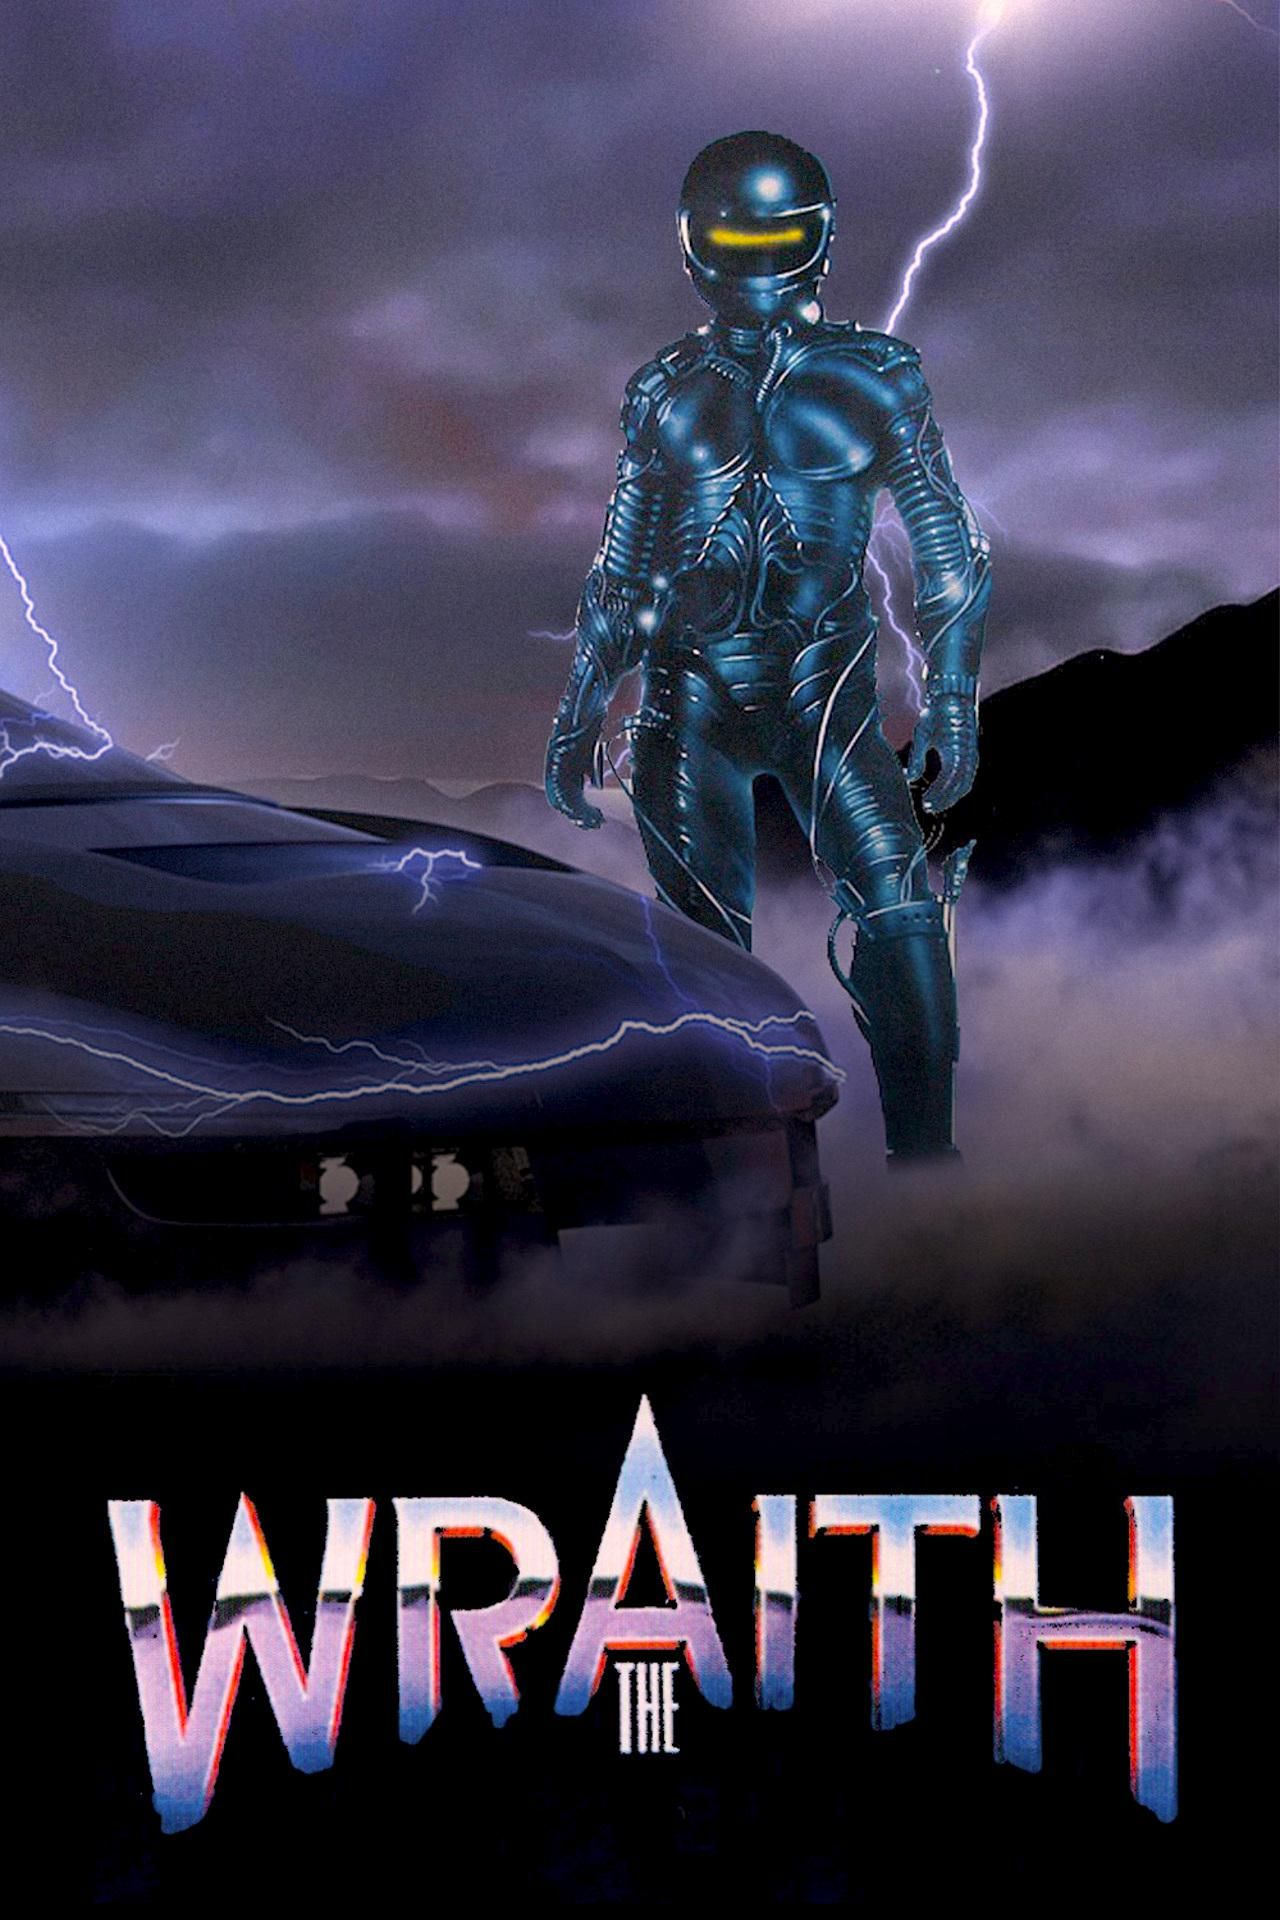 The Wraith (1986) HD Wallpaper From Movie